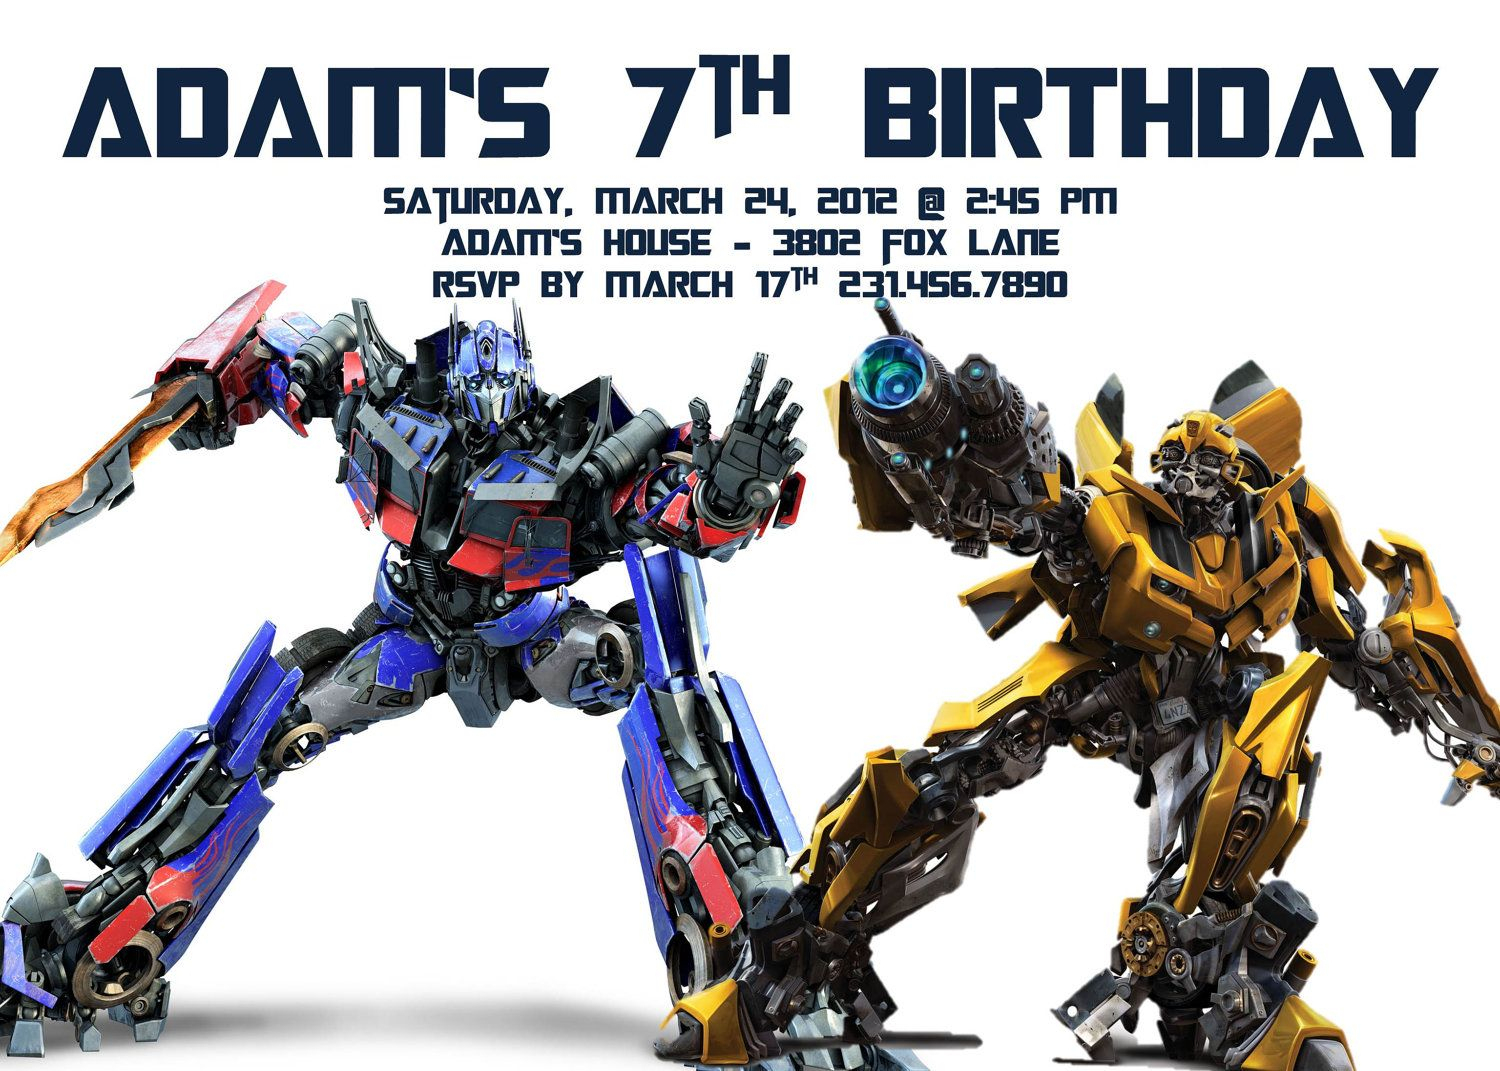 Transformers Birthday Invitation Template | Party - Alistairs 5Th - Transformers Party Invitations Free Printable